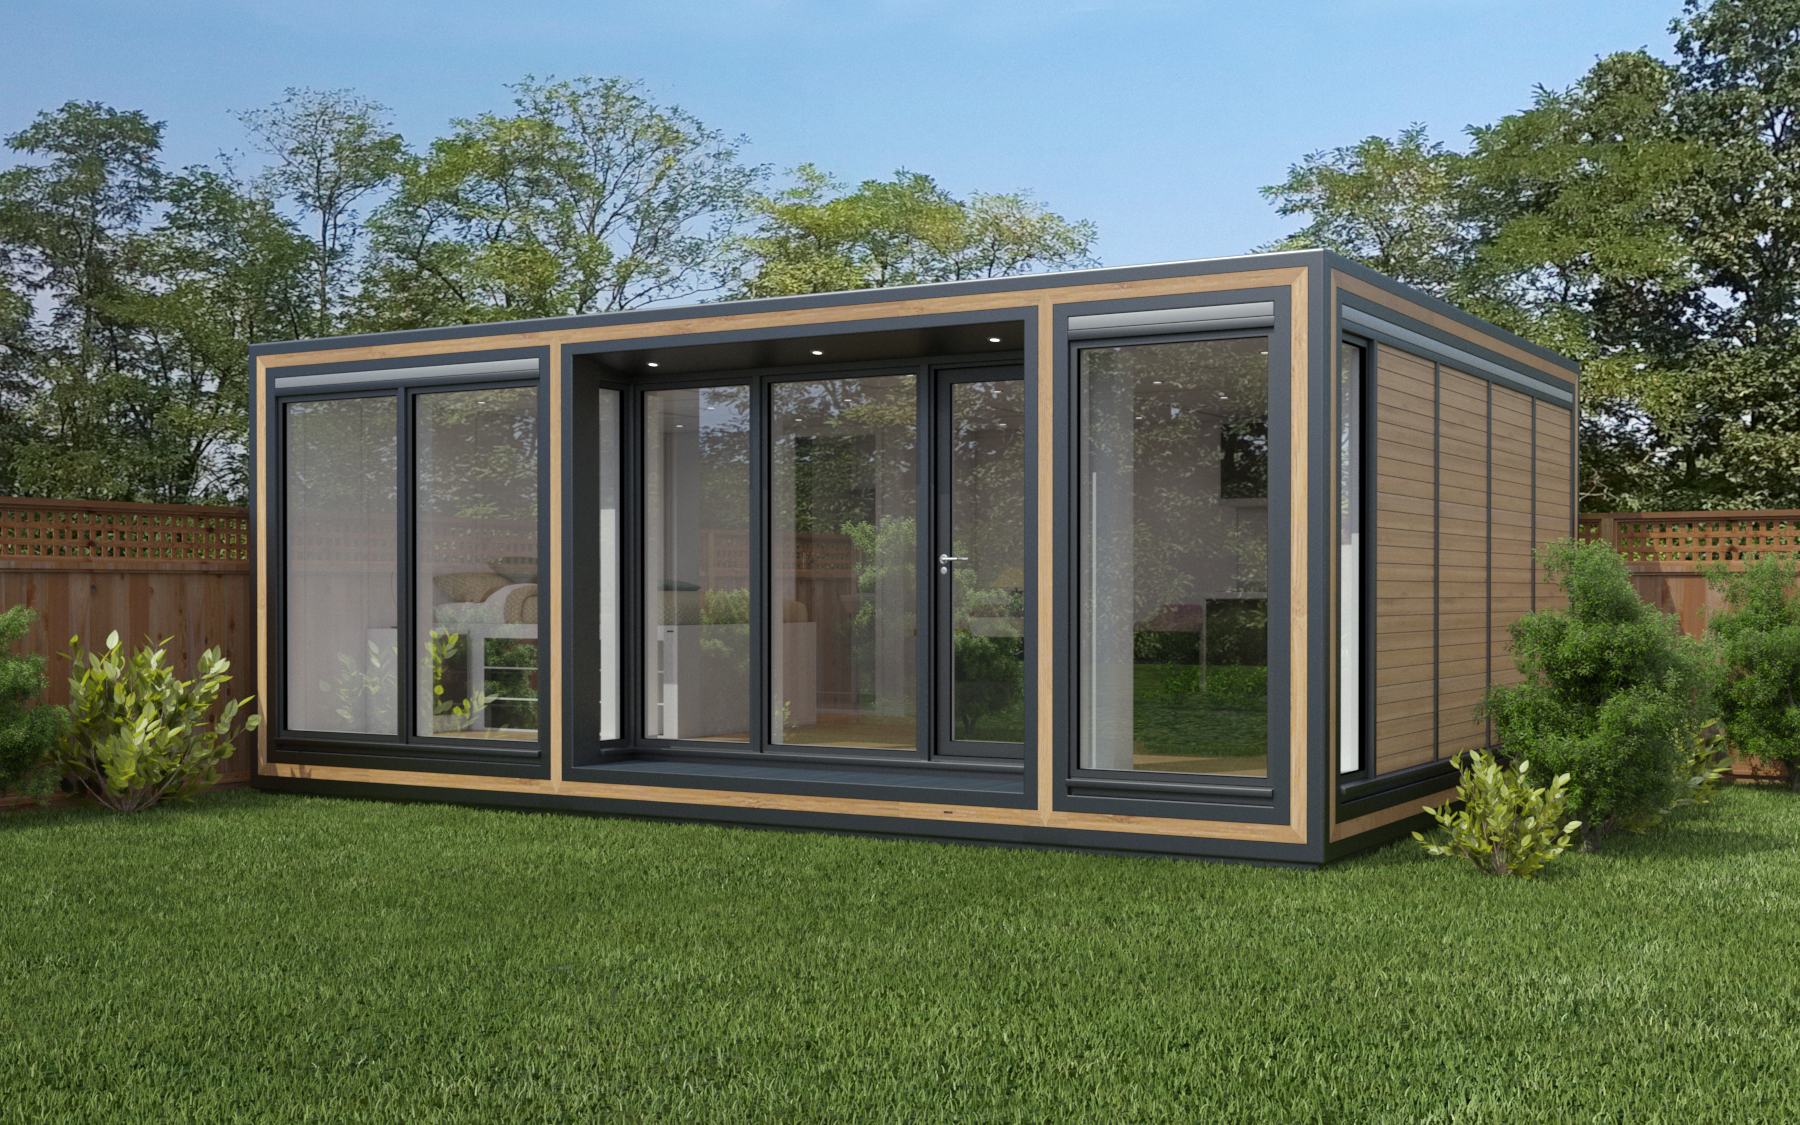 ZEDBOX 645  (6 x 4.5)  Internal Size: 6401 x 4817  External Size: 6871 x 5287  Bed Options: Single or Double  Kitchen Options: Micro Kitchen or Kitchen  Wet Room Options: Yes  Portico: Yes  Price:  £42,000    Optional Extras    Request Zedbox Catalogue